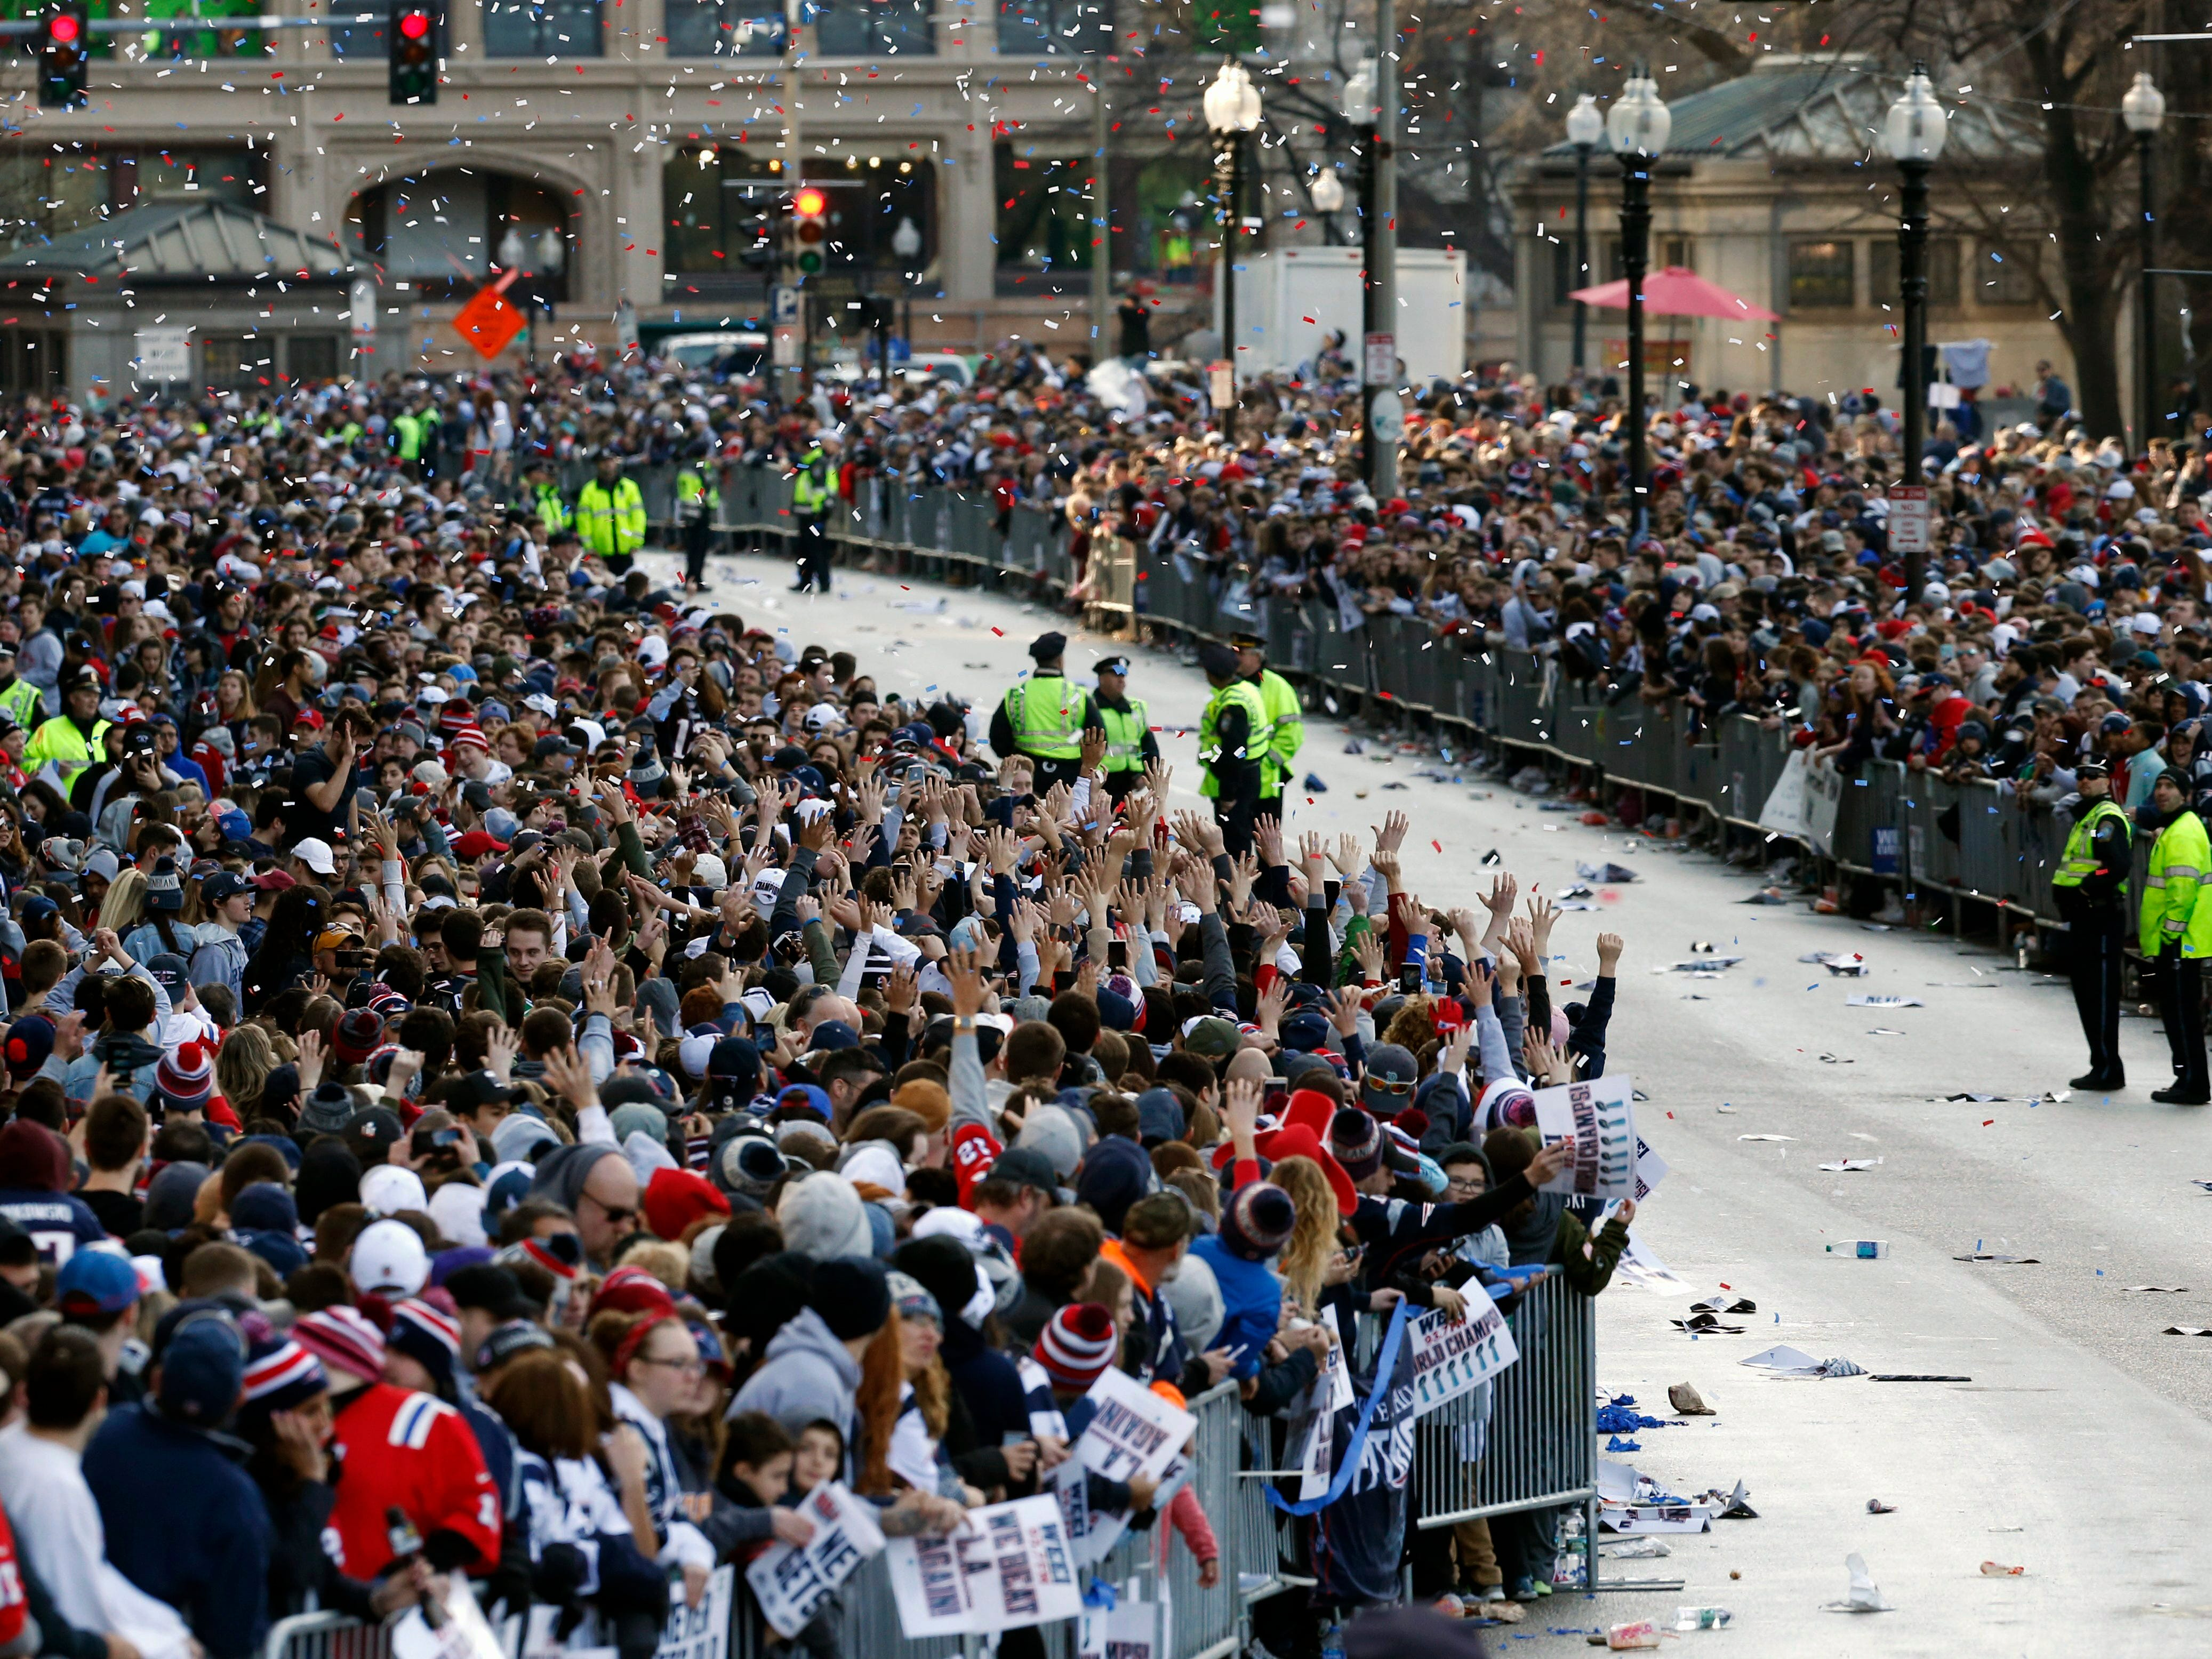 Fans line Tremont Street before the New England Patriots parade through downtown Boston, Tuesday to celebrate their win over the Los Angeles Rams in Sunday's NFL Super Bowl 53 football game in Atlanta. (AP Photo/Michael Dwyer)